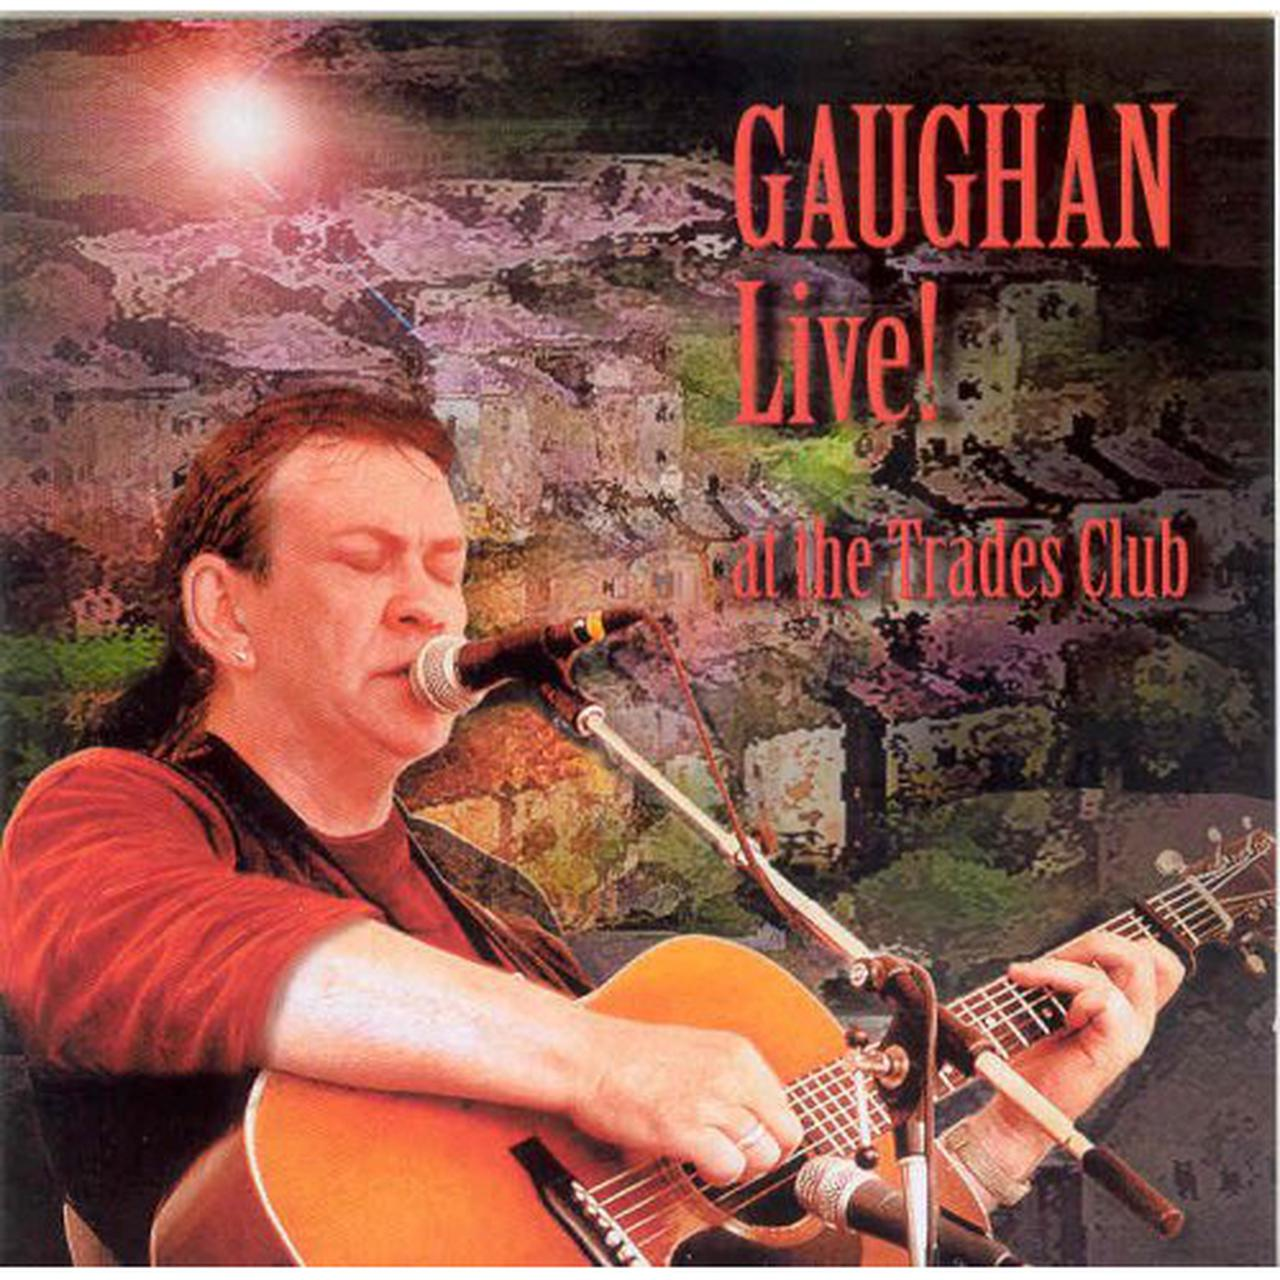 GAUGHAN LIVE! AT THE CD